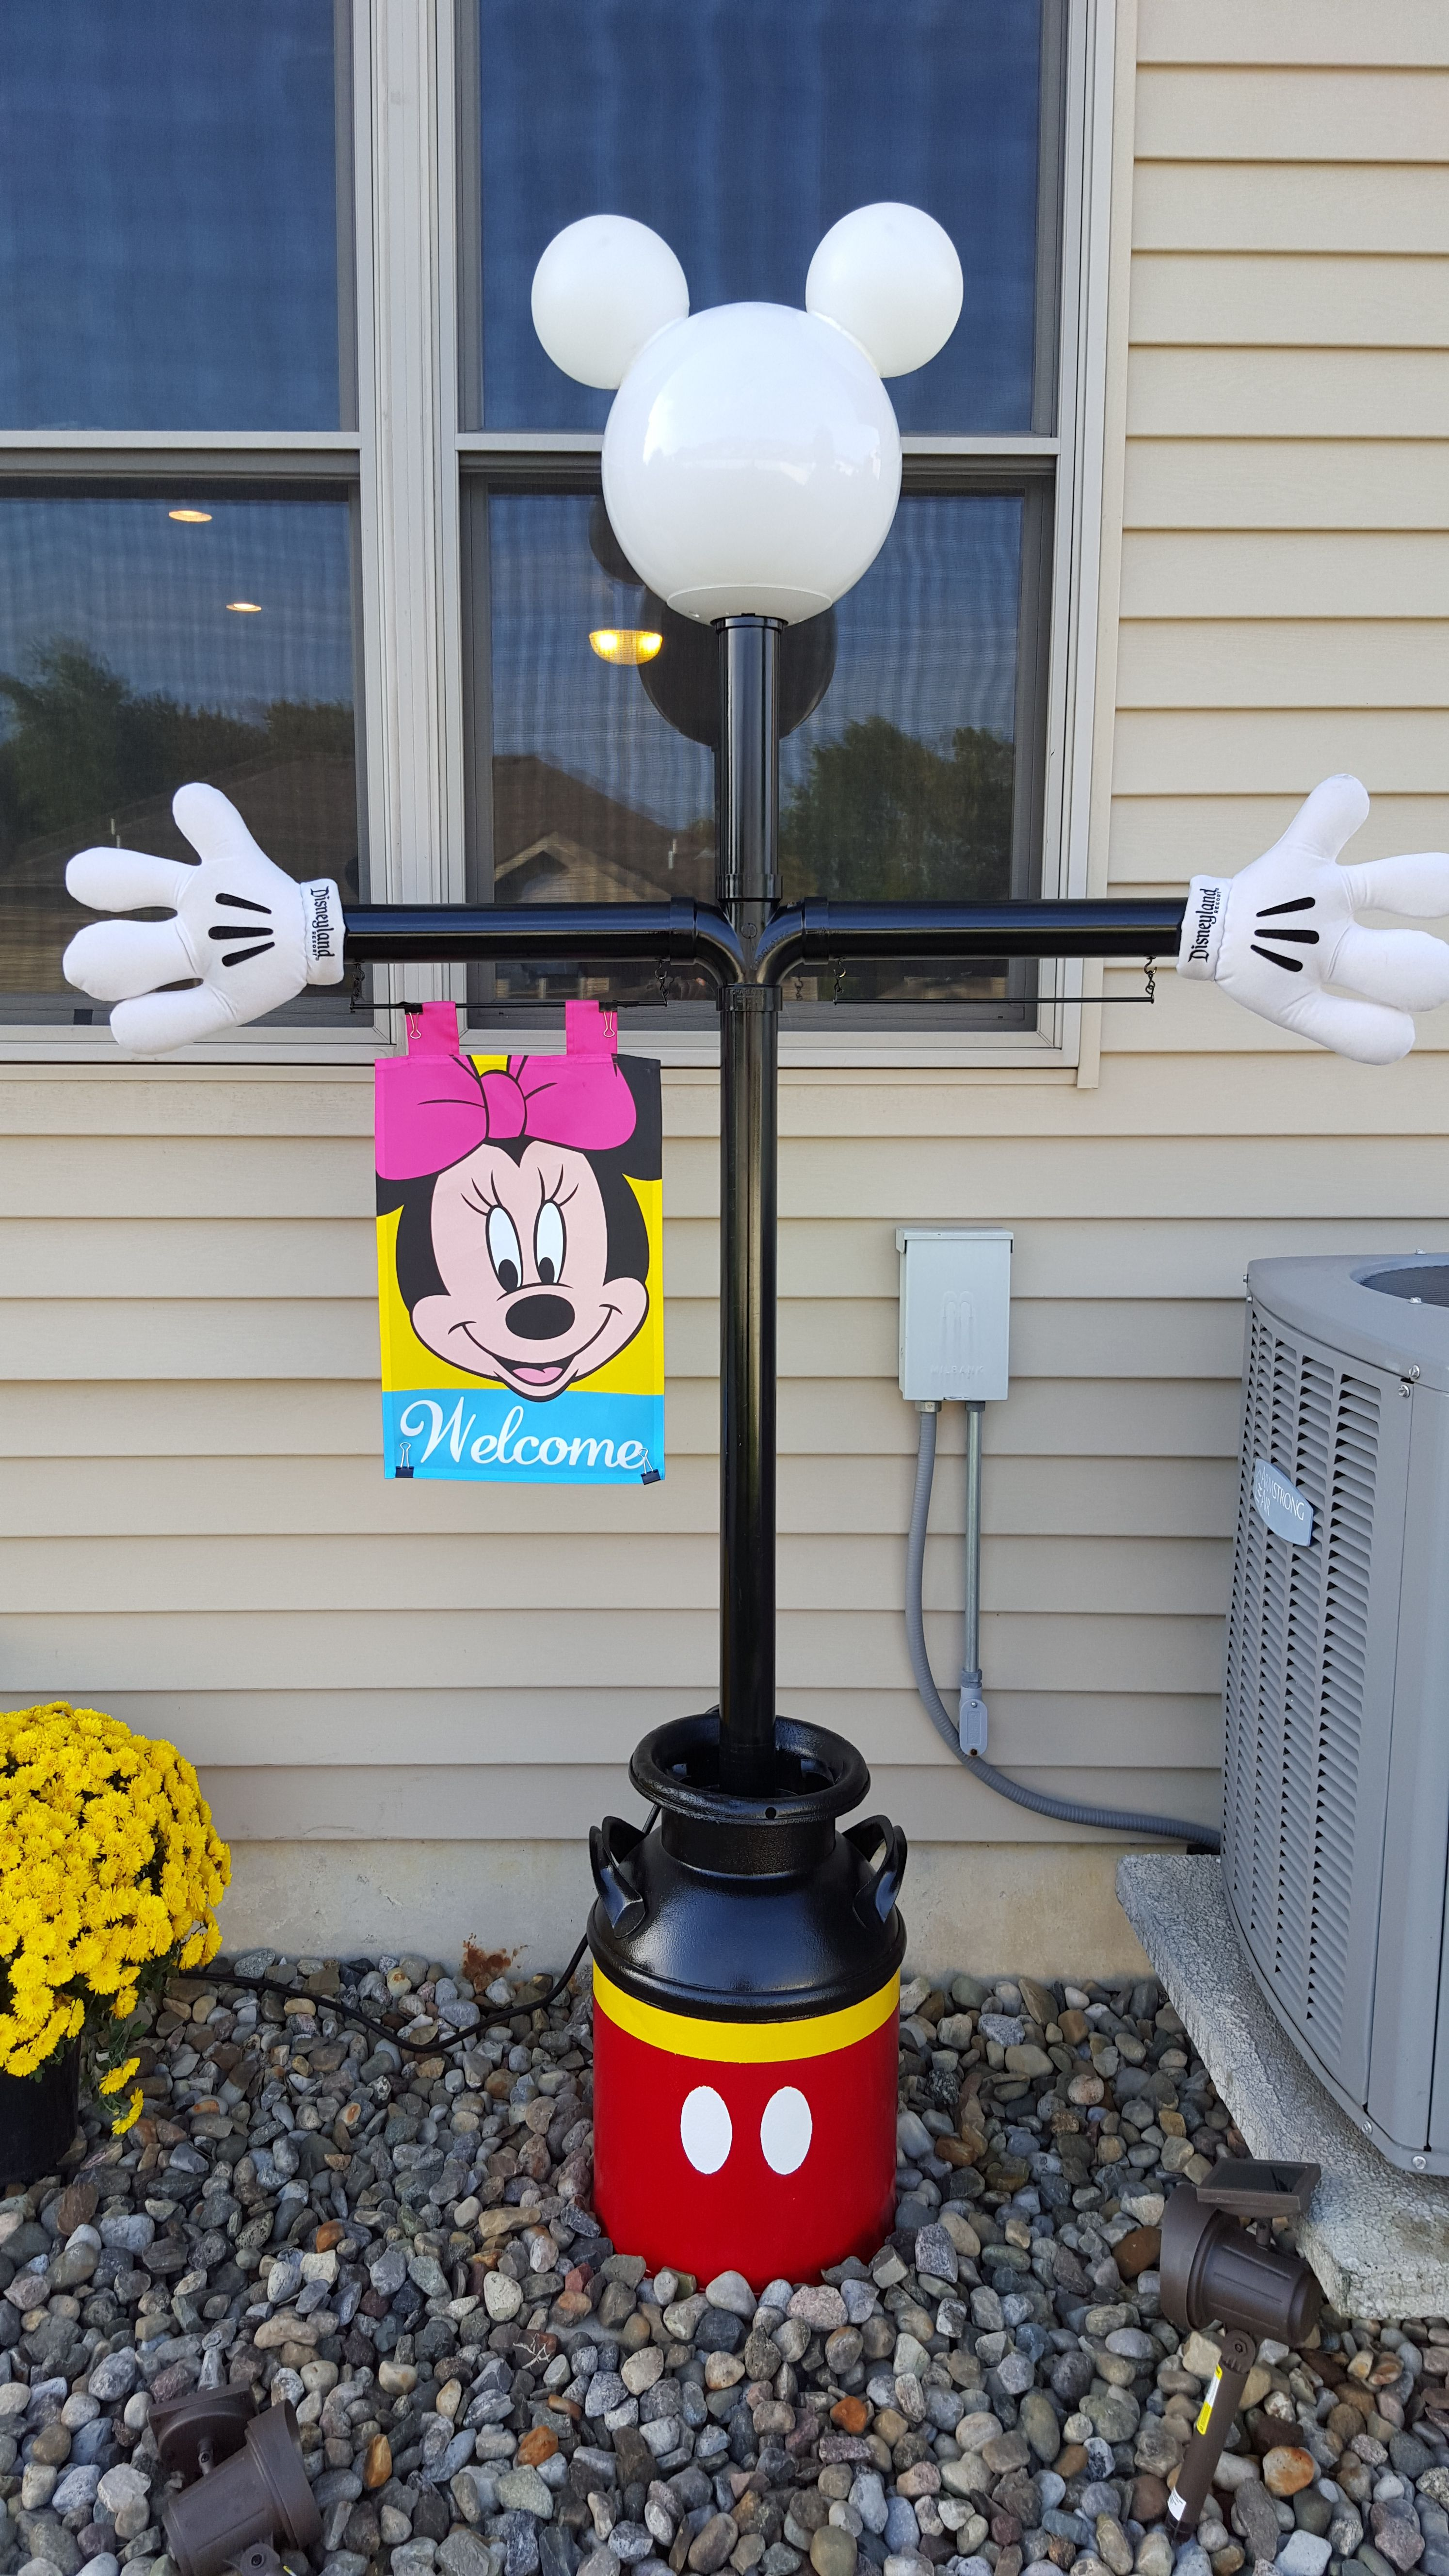 Mickey Mouse Lamppost. Finally Finished It. Have Lots Of Info And Hints, But